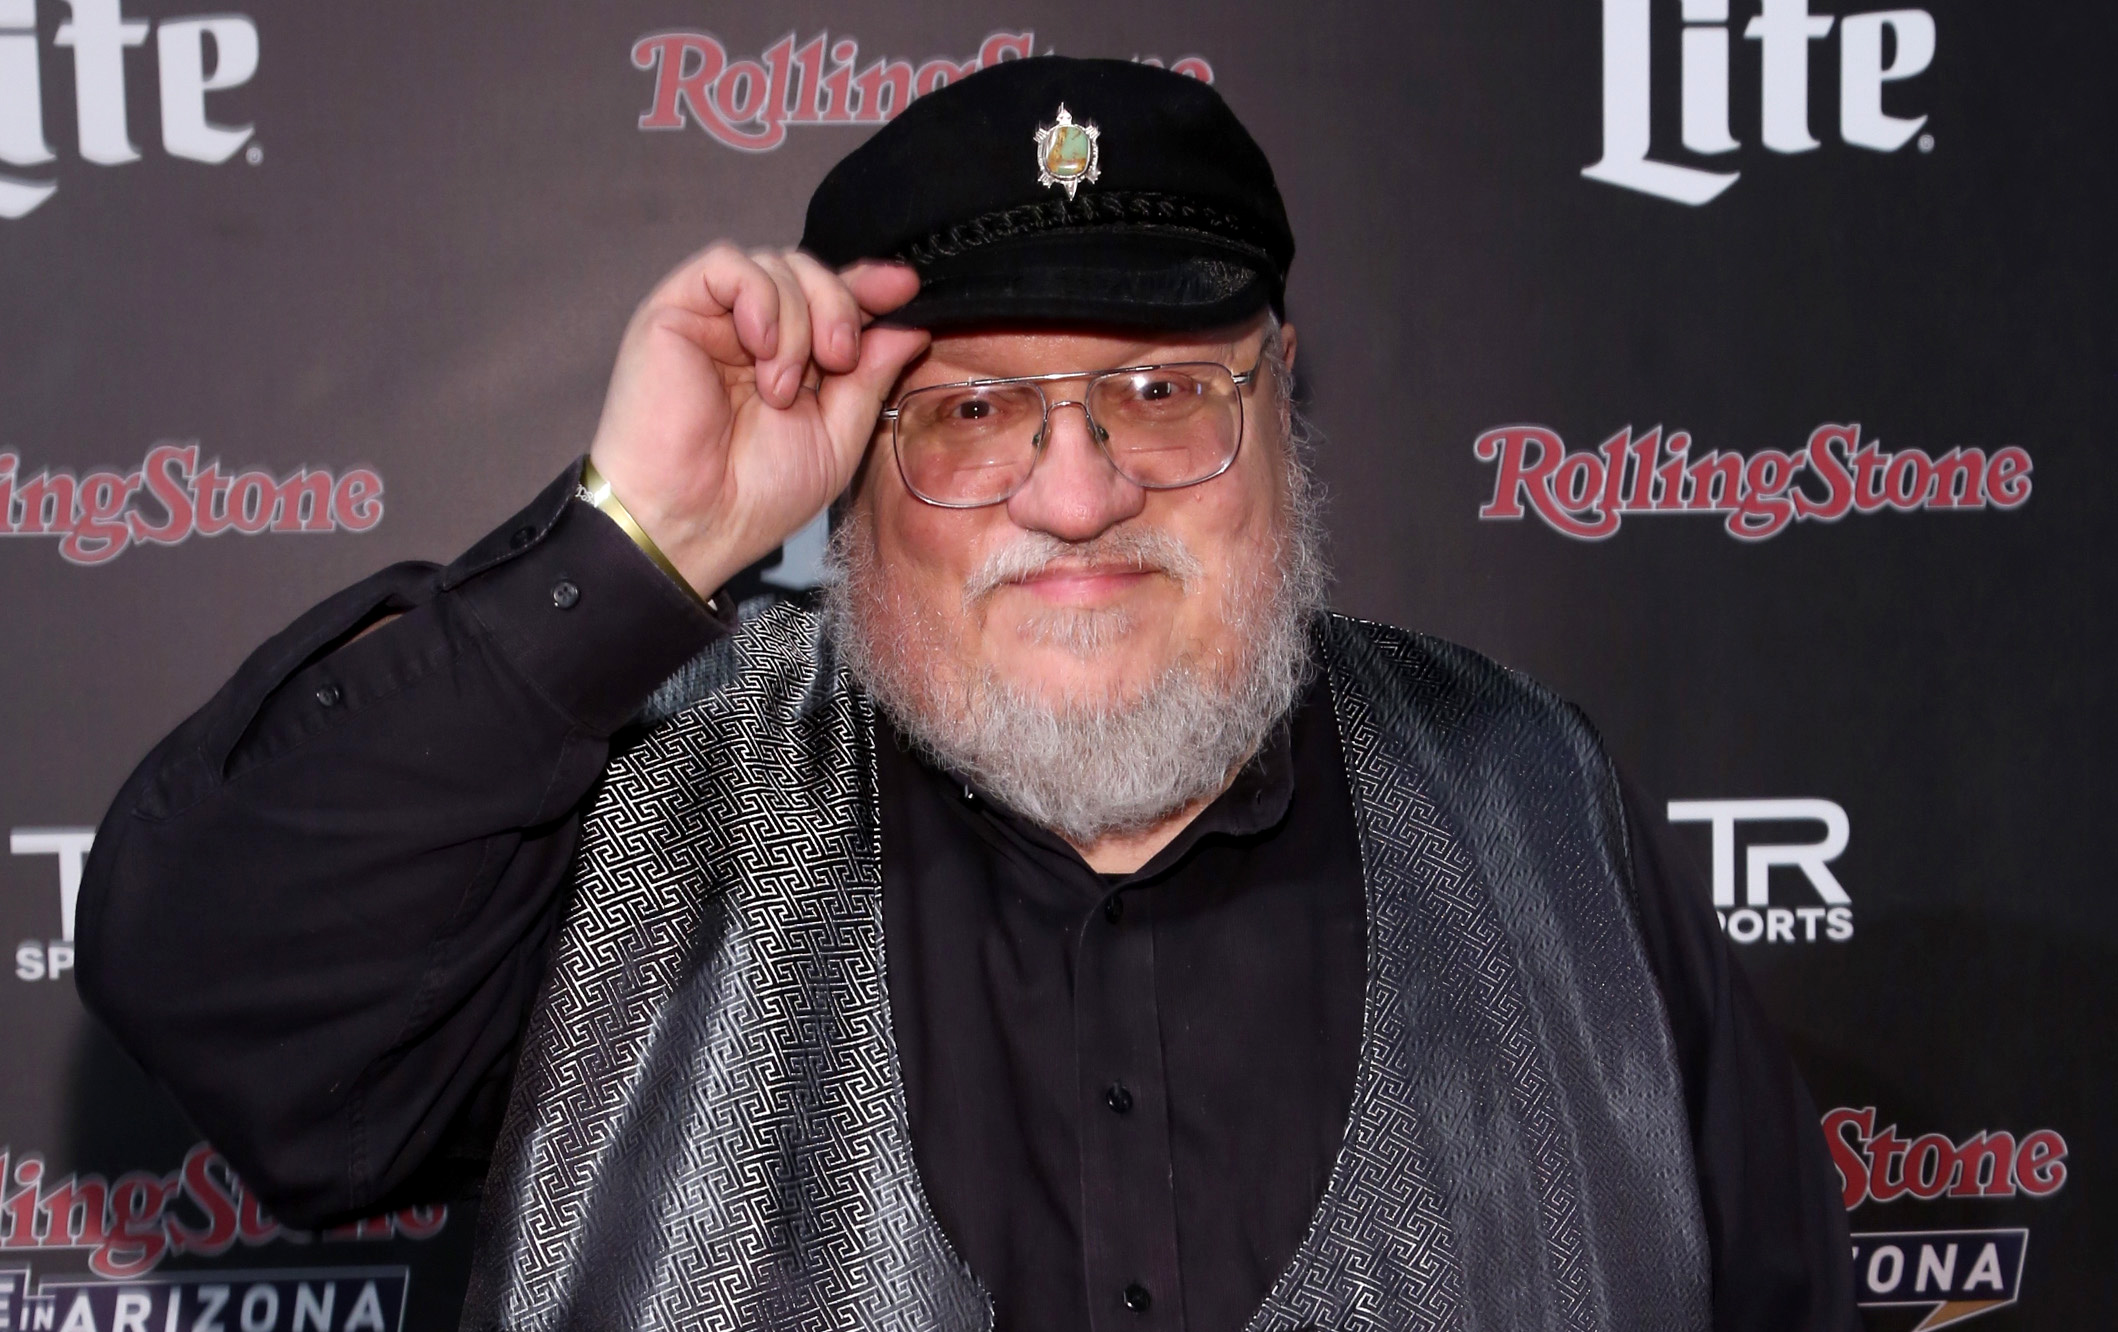 george rr 02 getty Next Game of Thrones Book Release Date Accidentally Leaked